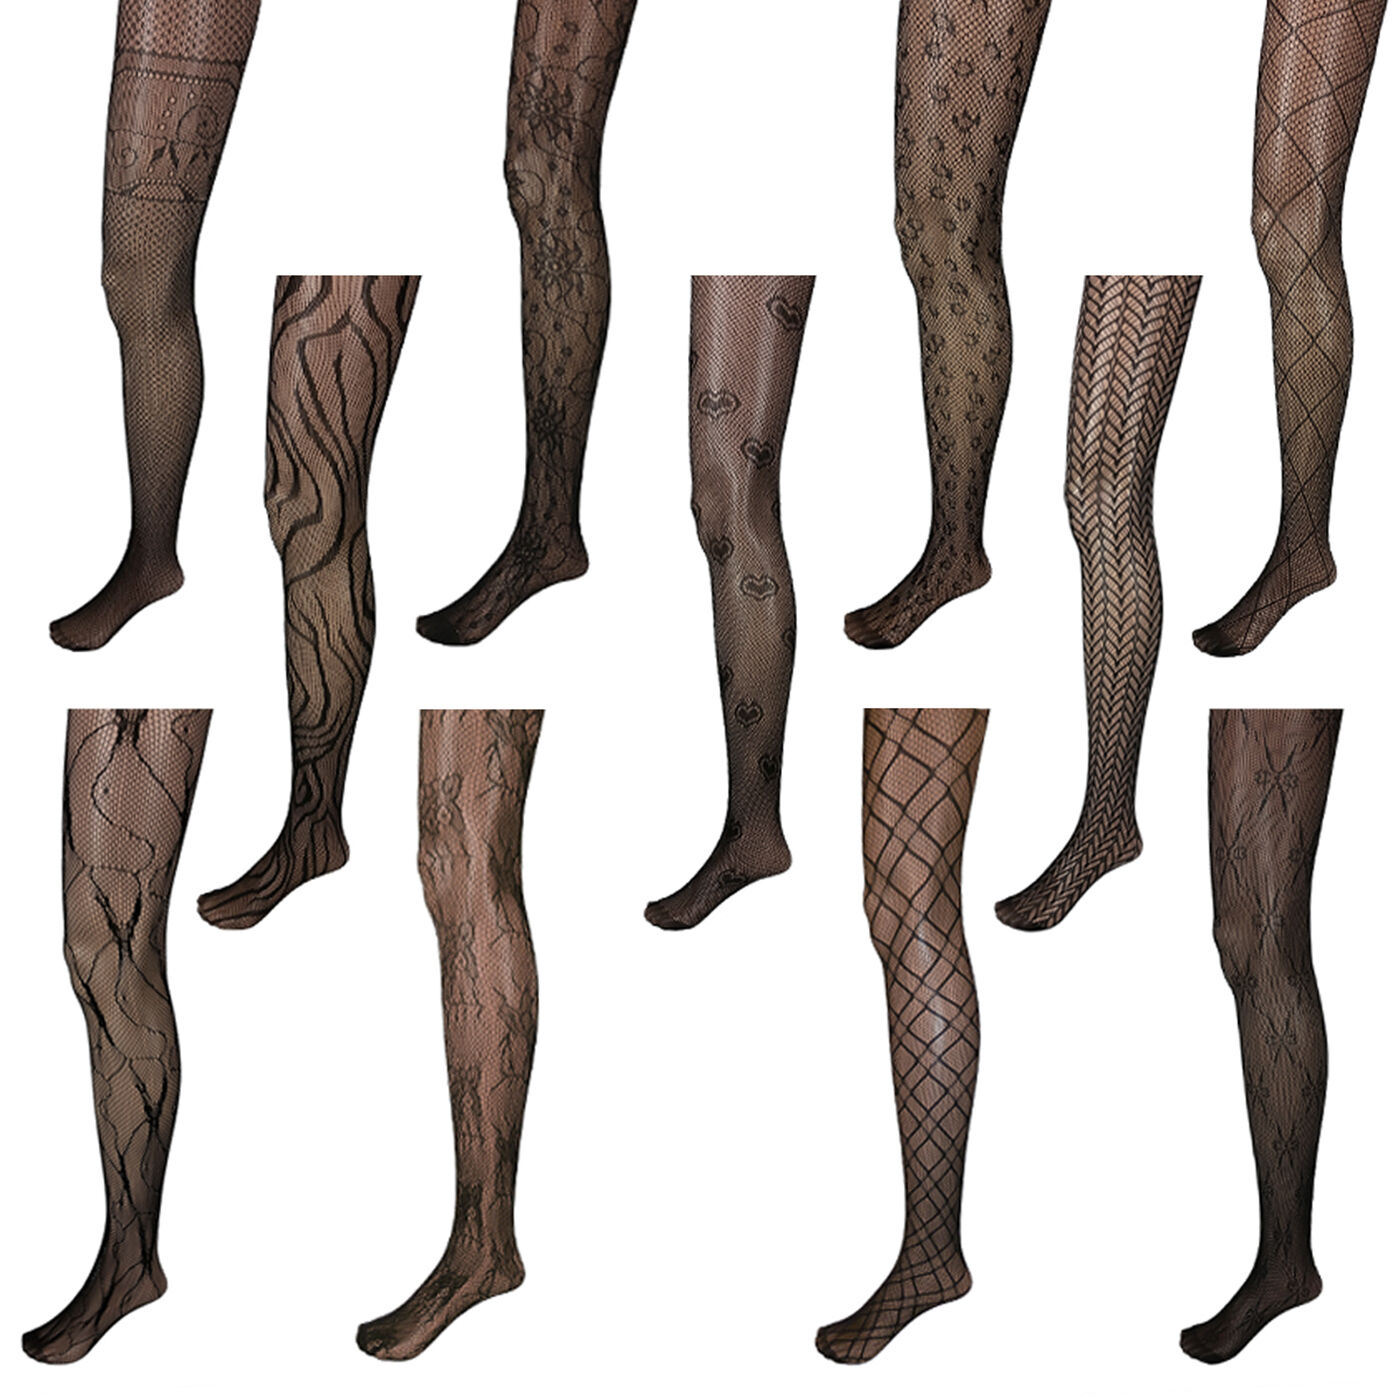 e17ed5a48f2 Black Unique Pattern Net Lace Stockings Fishnet Tights Pantyhose Nylons 아이템  넘버  181672196254.